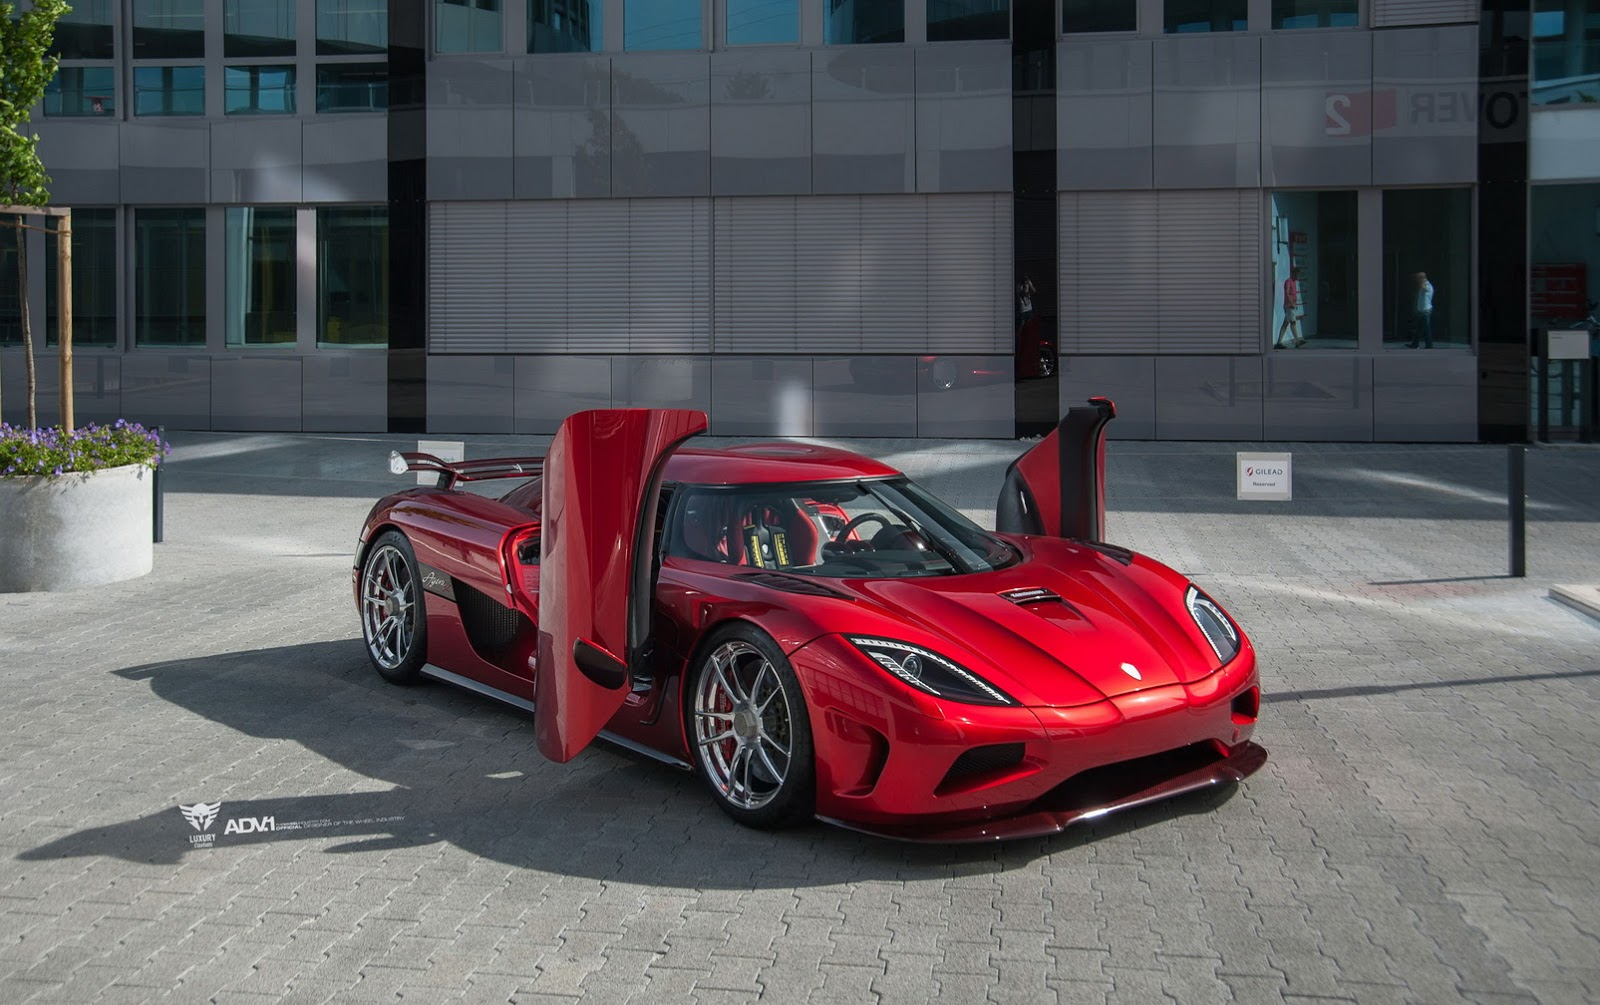 Red Koenigsegg Agera R Stuns With ADV.1 Wheels